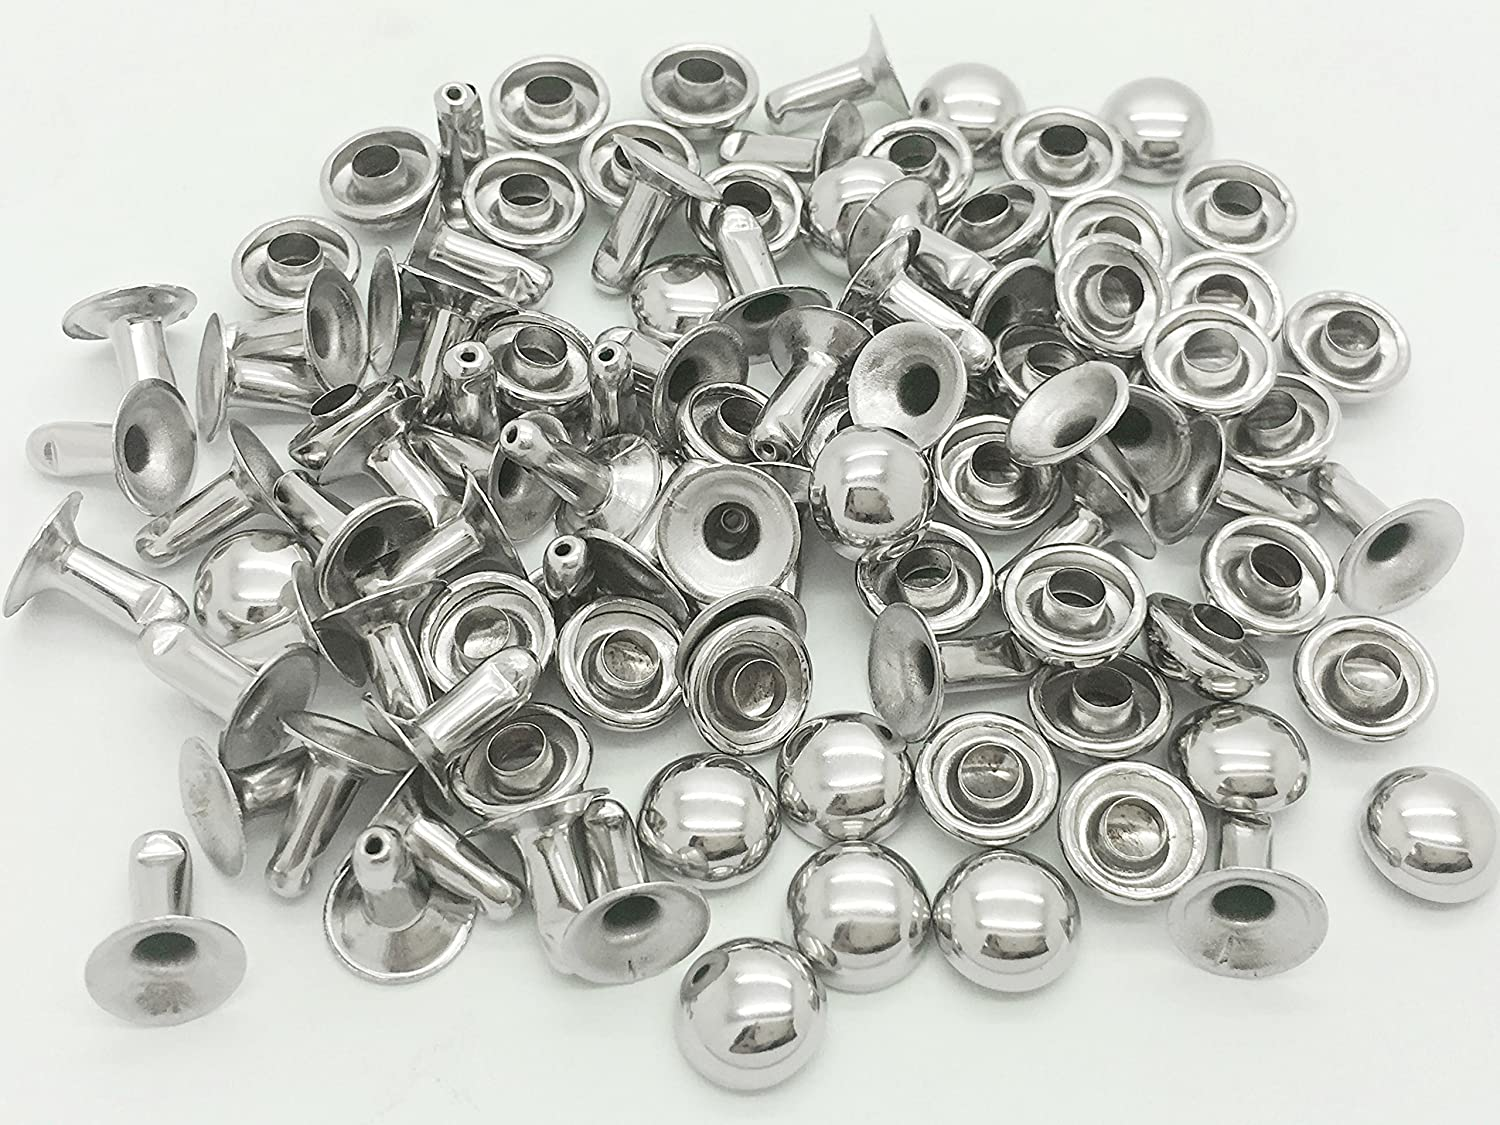 5 Packs Of Single Cap Rivets 10mm x 100 Silver Colour With Tool